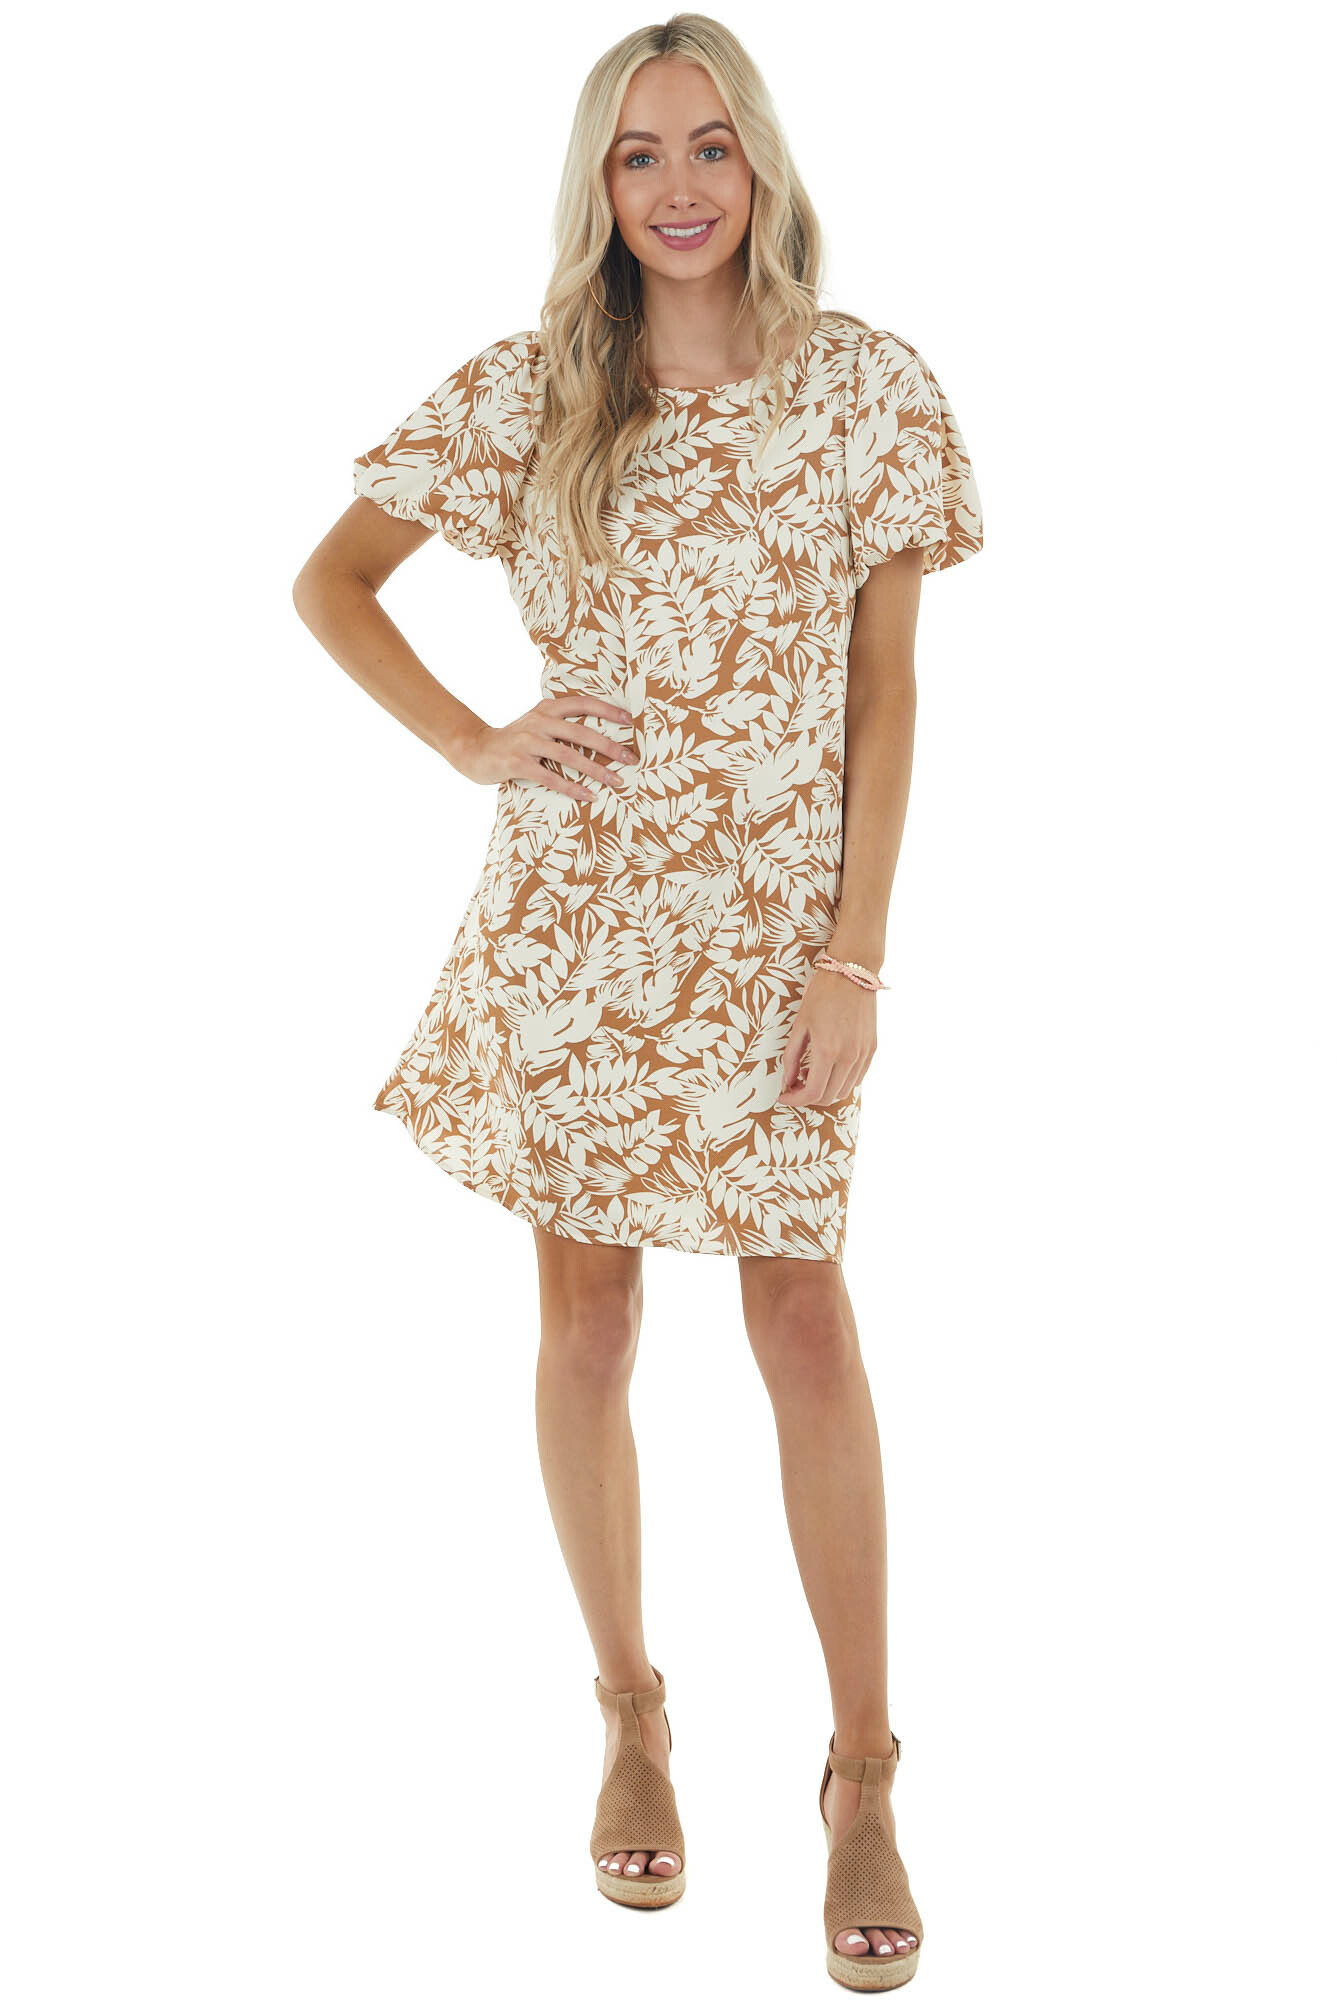 Light Sepia Leaf Print Woven Dress with Short Puff Sleeves